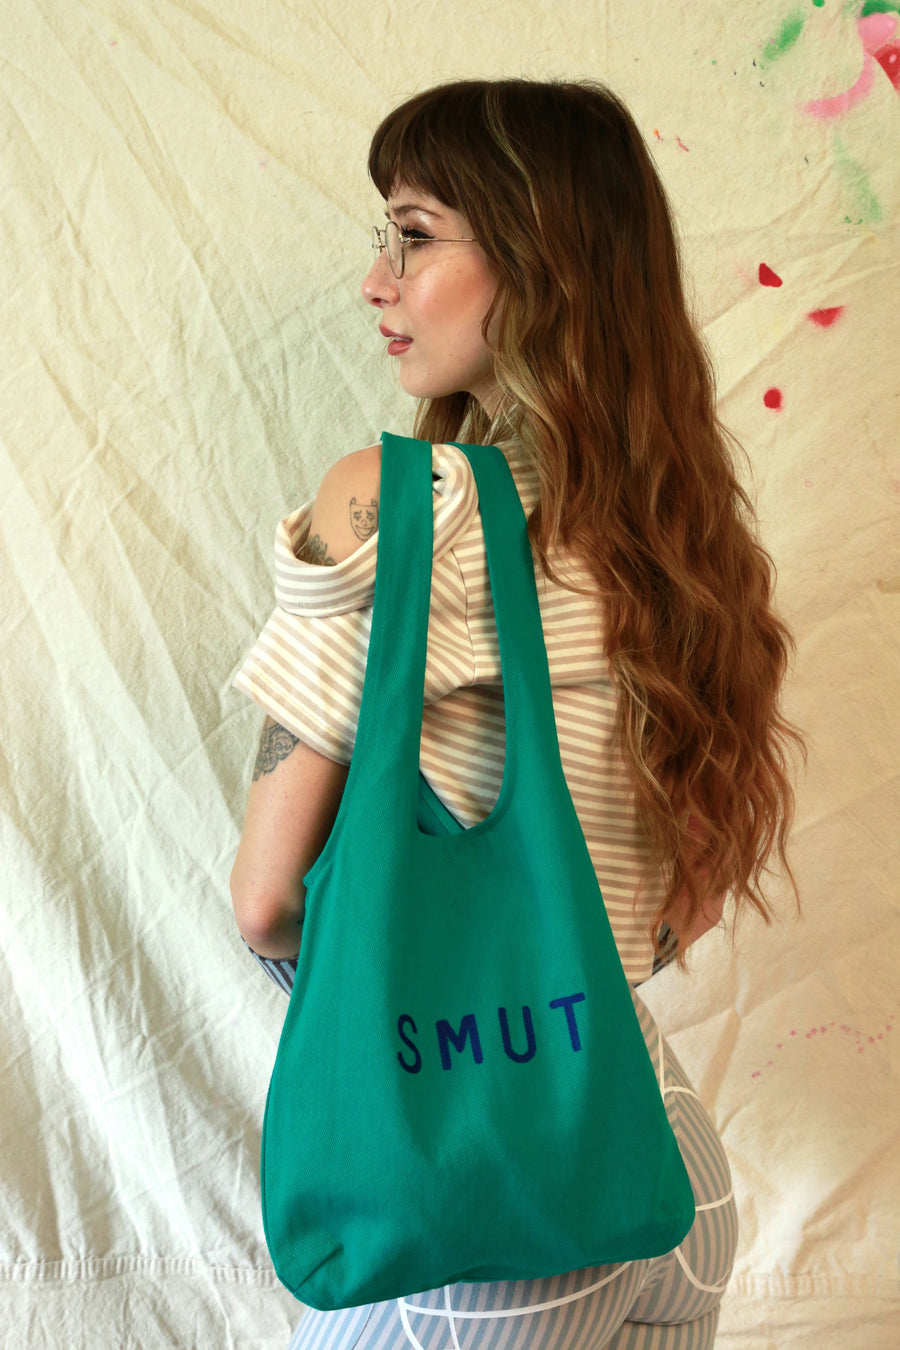 Smut Tote